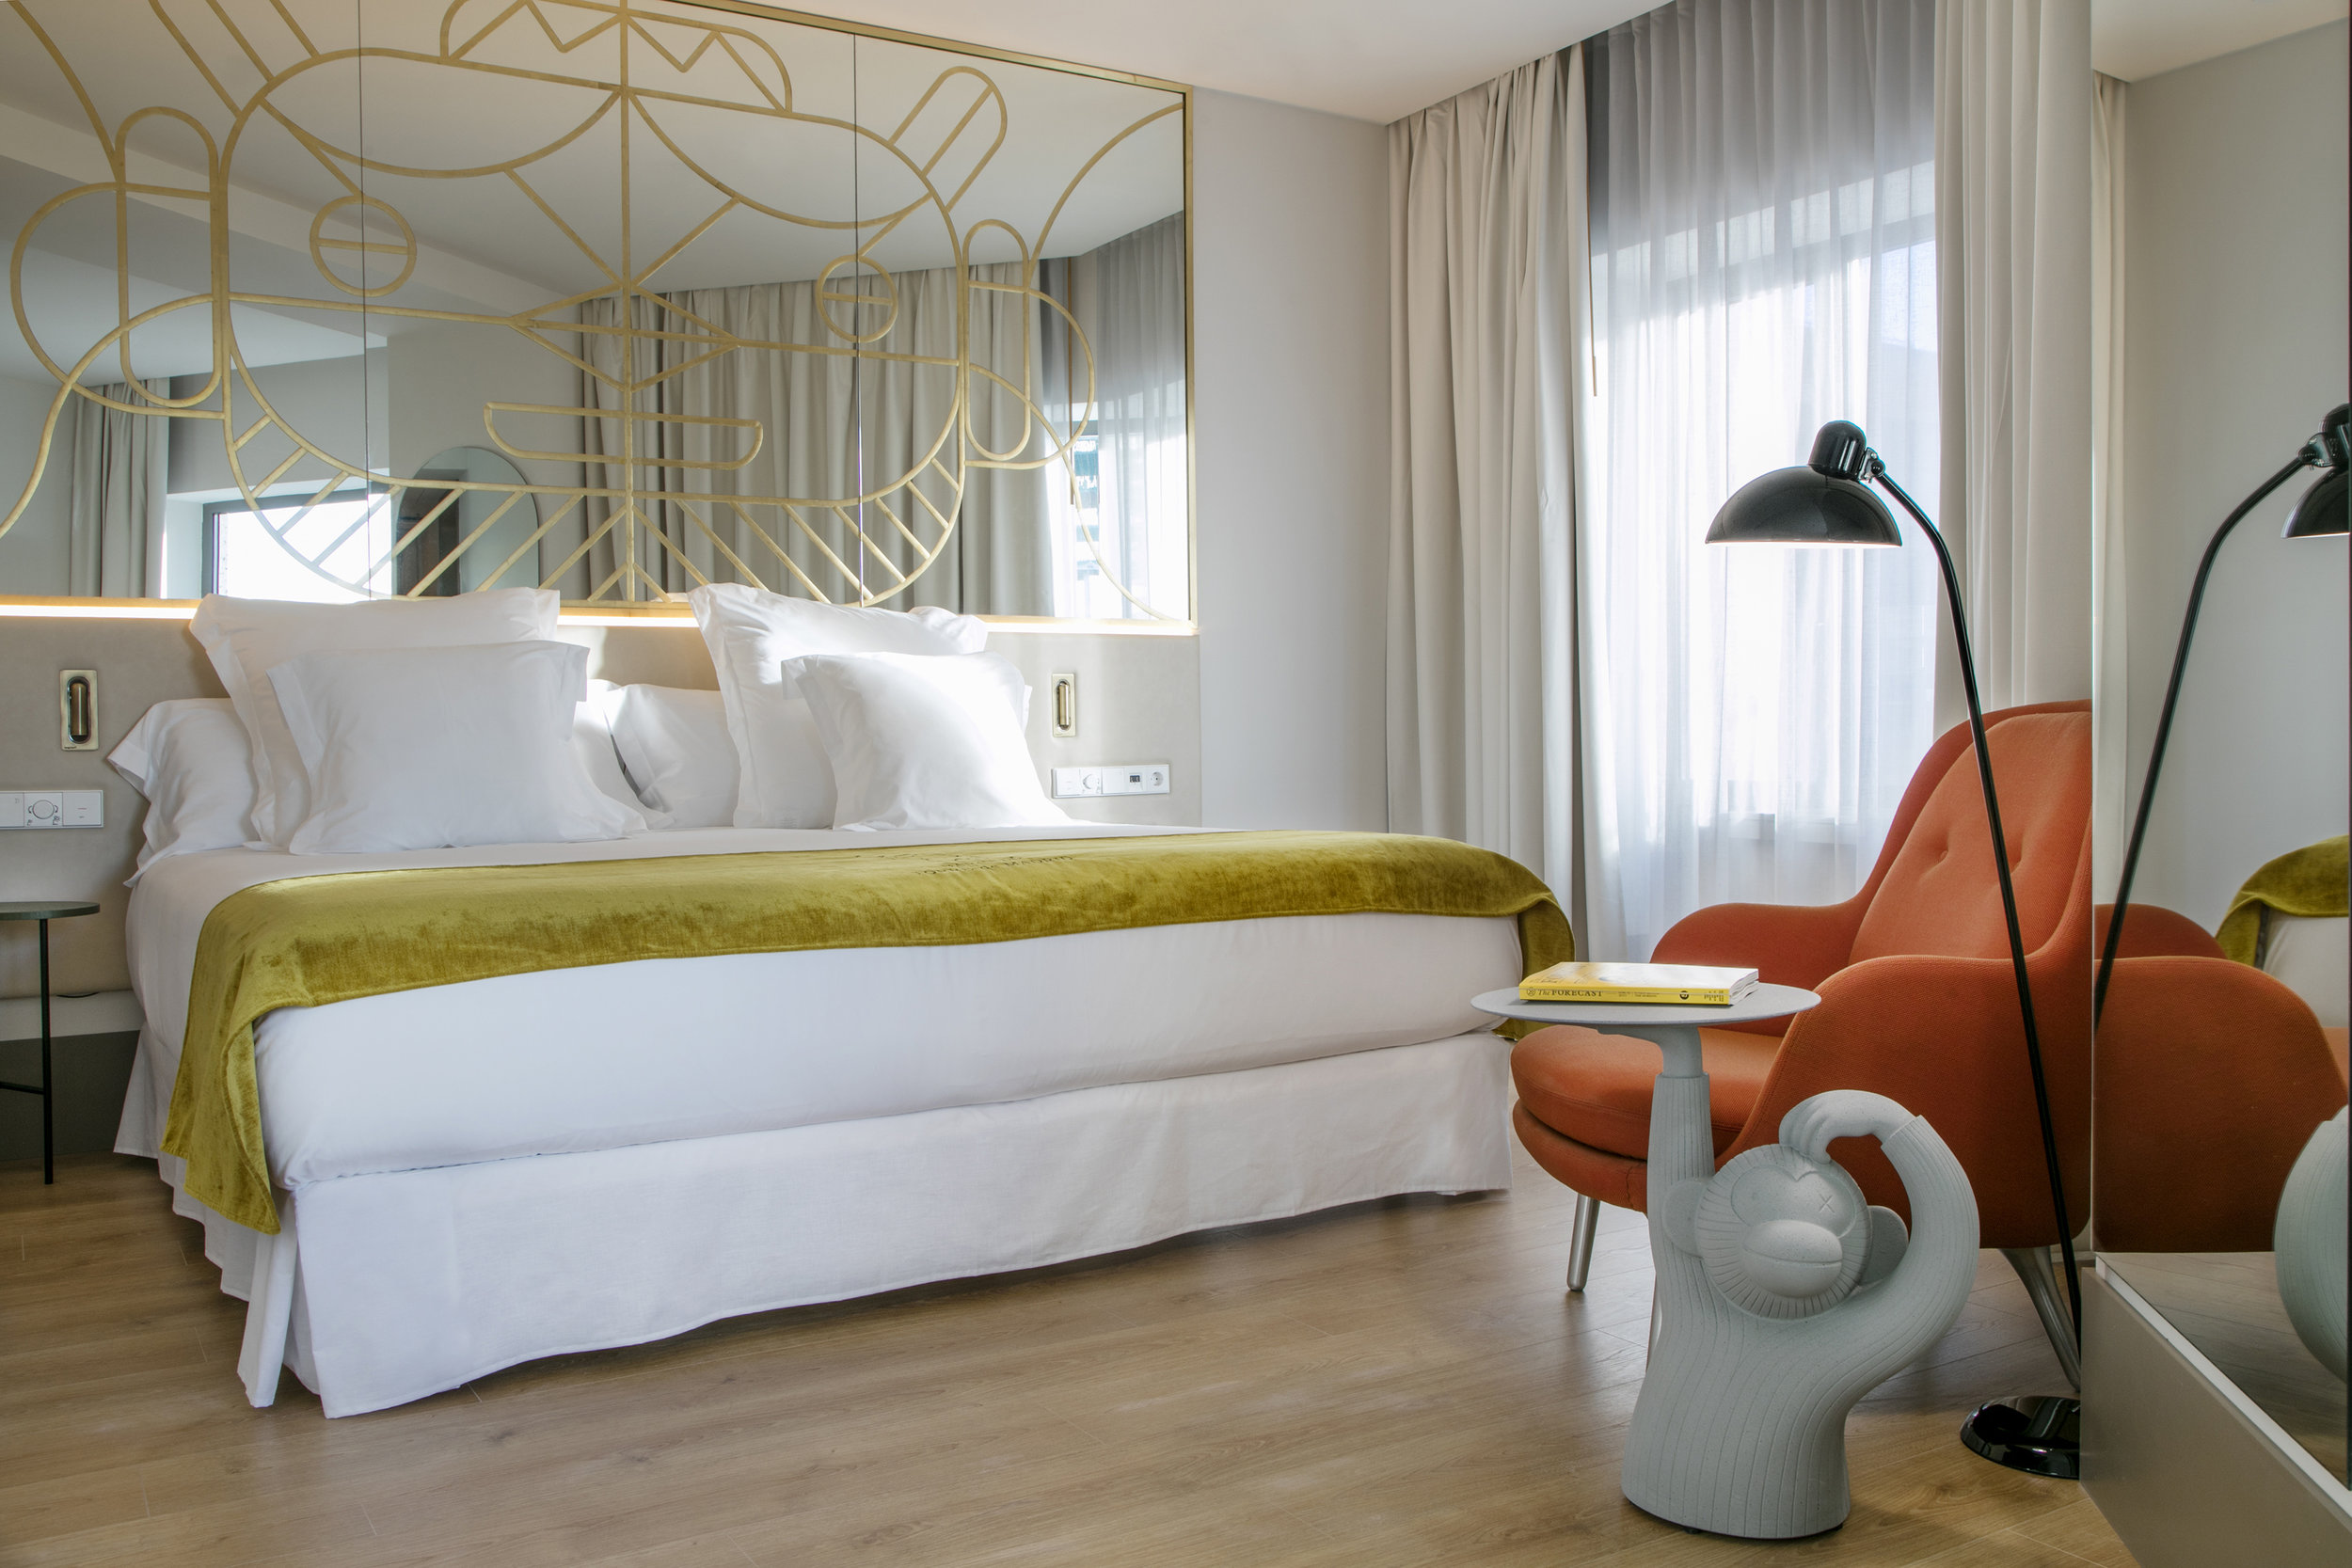 Standard Room: Face Mirror special piece by Jaime Hayon for Hotel Barceló Torre de Madrid. Fri armchair and Kaiser Idell oor lamp by Fritz Hansen, Monkey Table by BD Barcelona